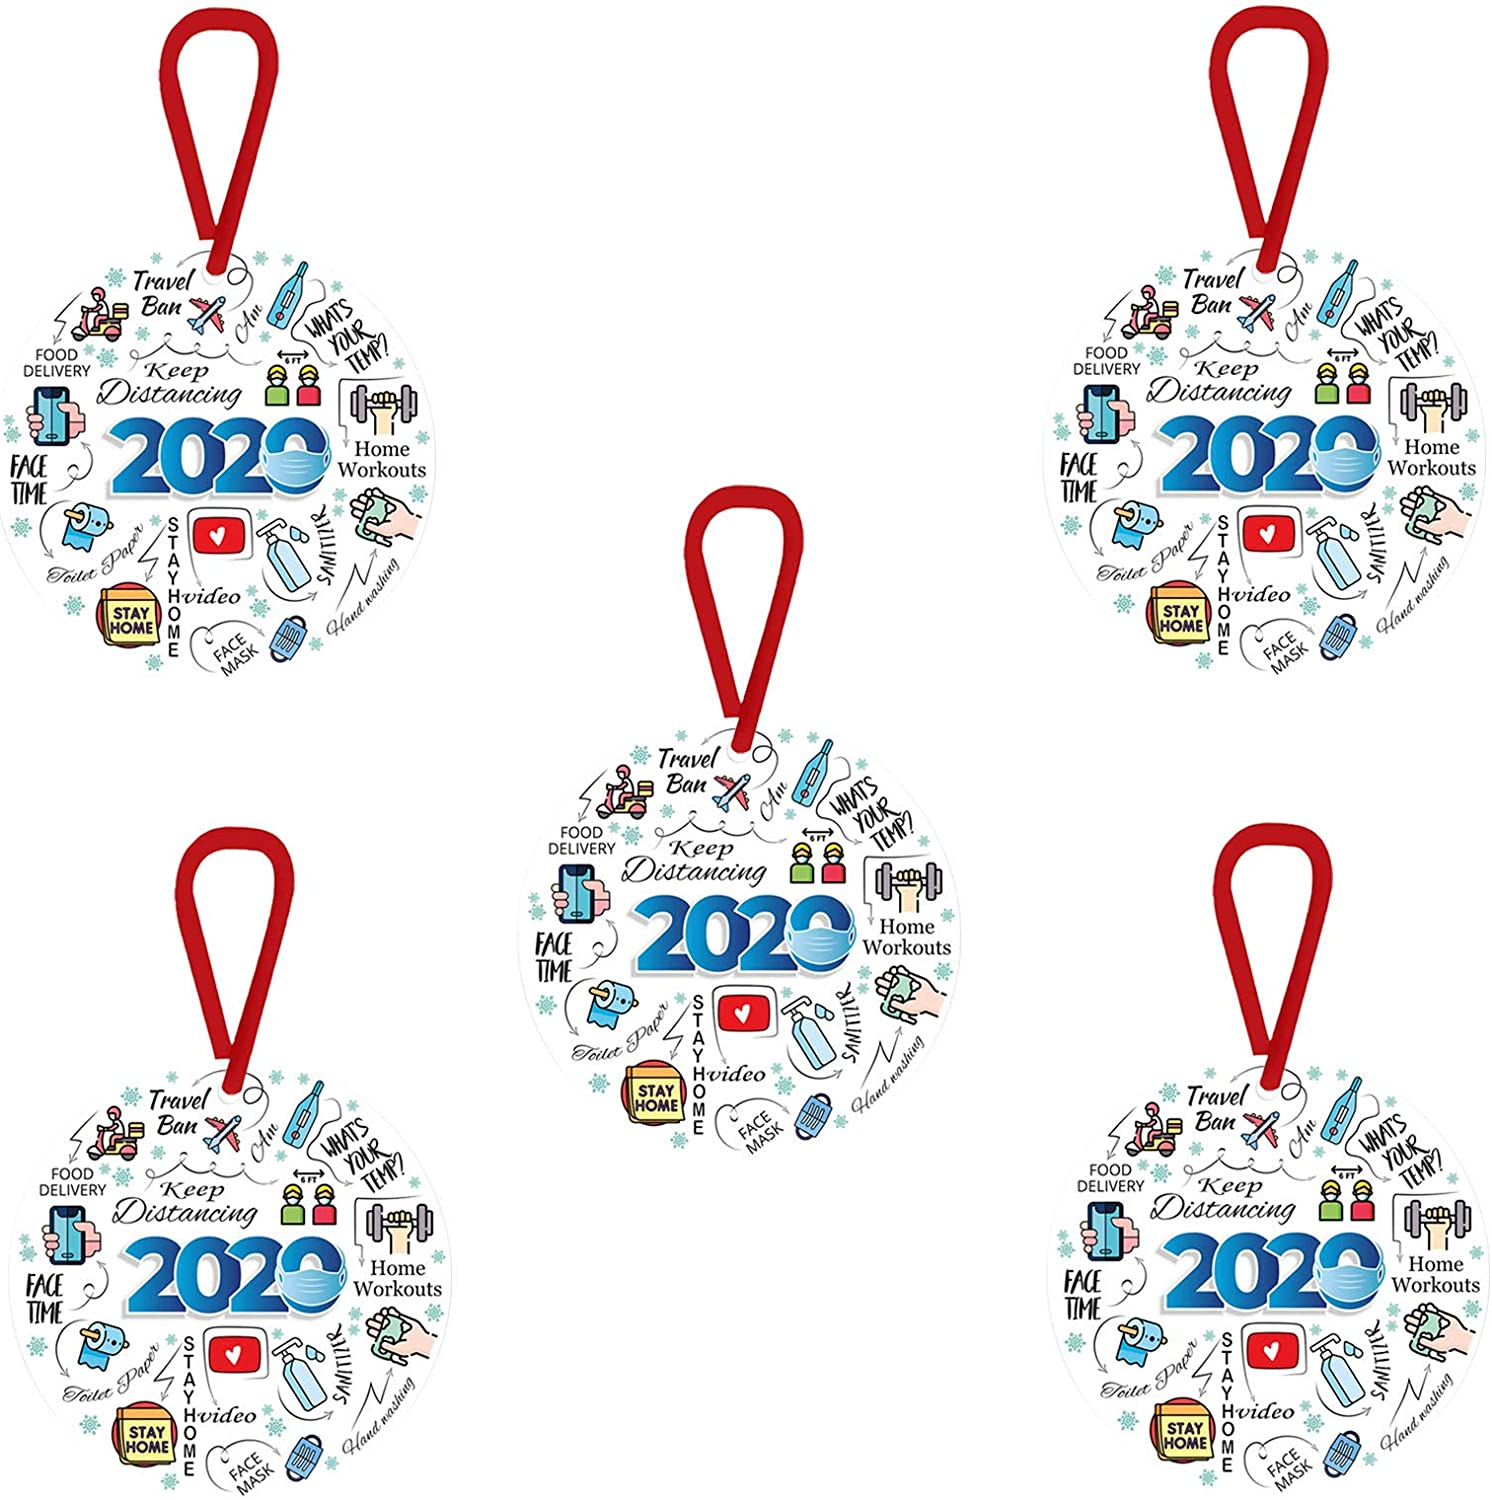 Mask Ornament Keep Distancing 2020 Xmas Tree Hanging Ornament Souvenir Pendant Gift Tree Accessories 2020 Annual Events Christmas Ornament Quarantine Personalized Keepsake Decorations 5, 2020